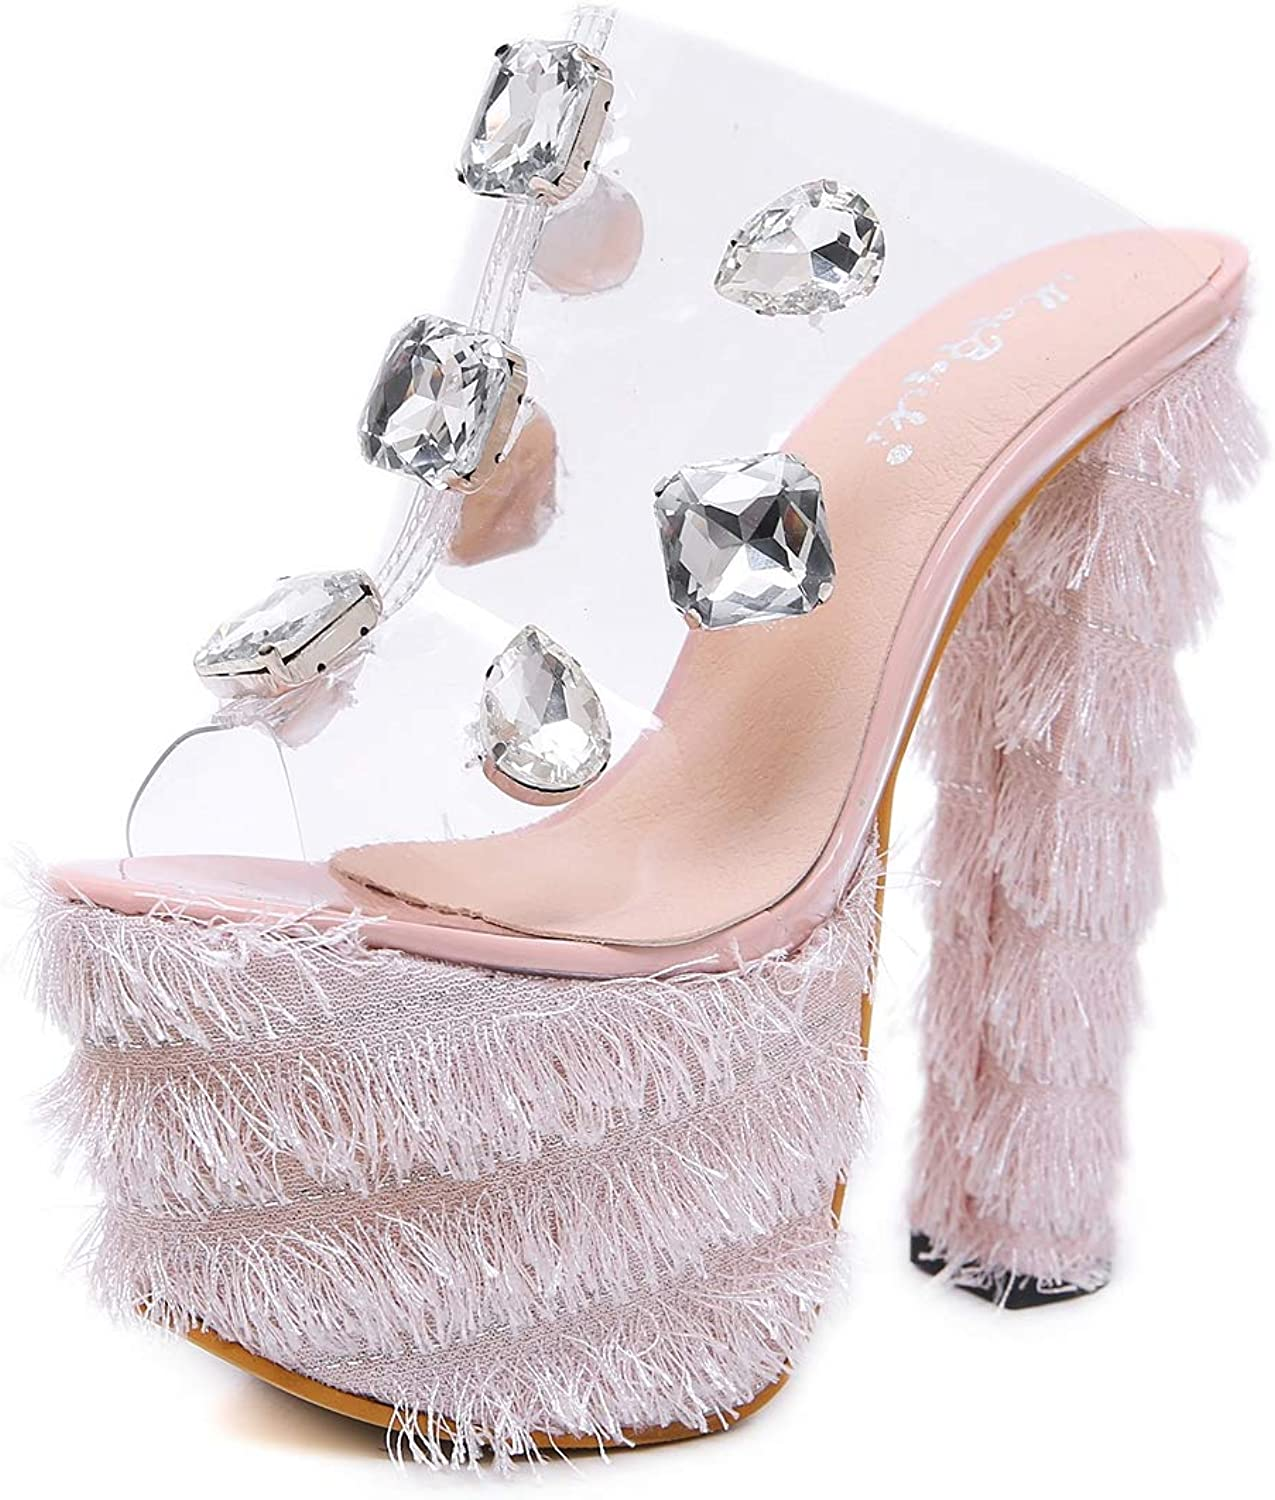 Women's Slippers - Rhinestone Super High Heel Thick with Waterproof Sexy Women's shoes